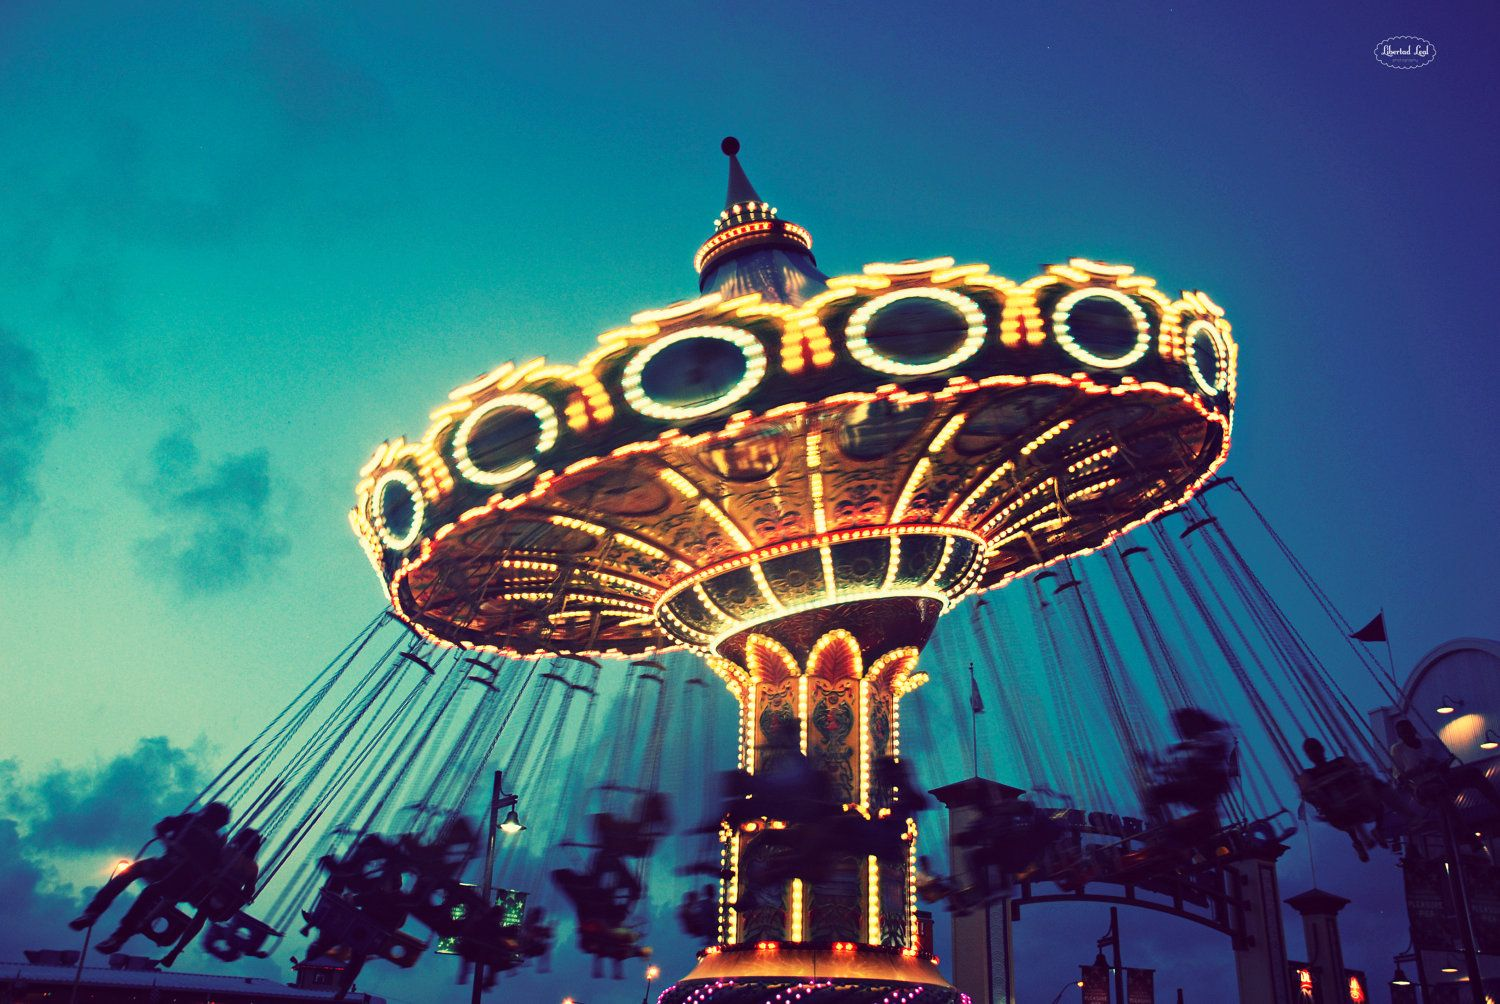 fine art photography retro fair ride carnival vintage